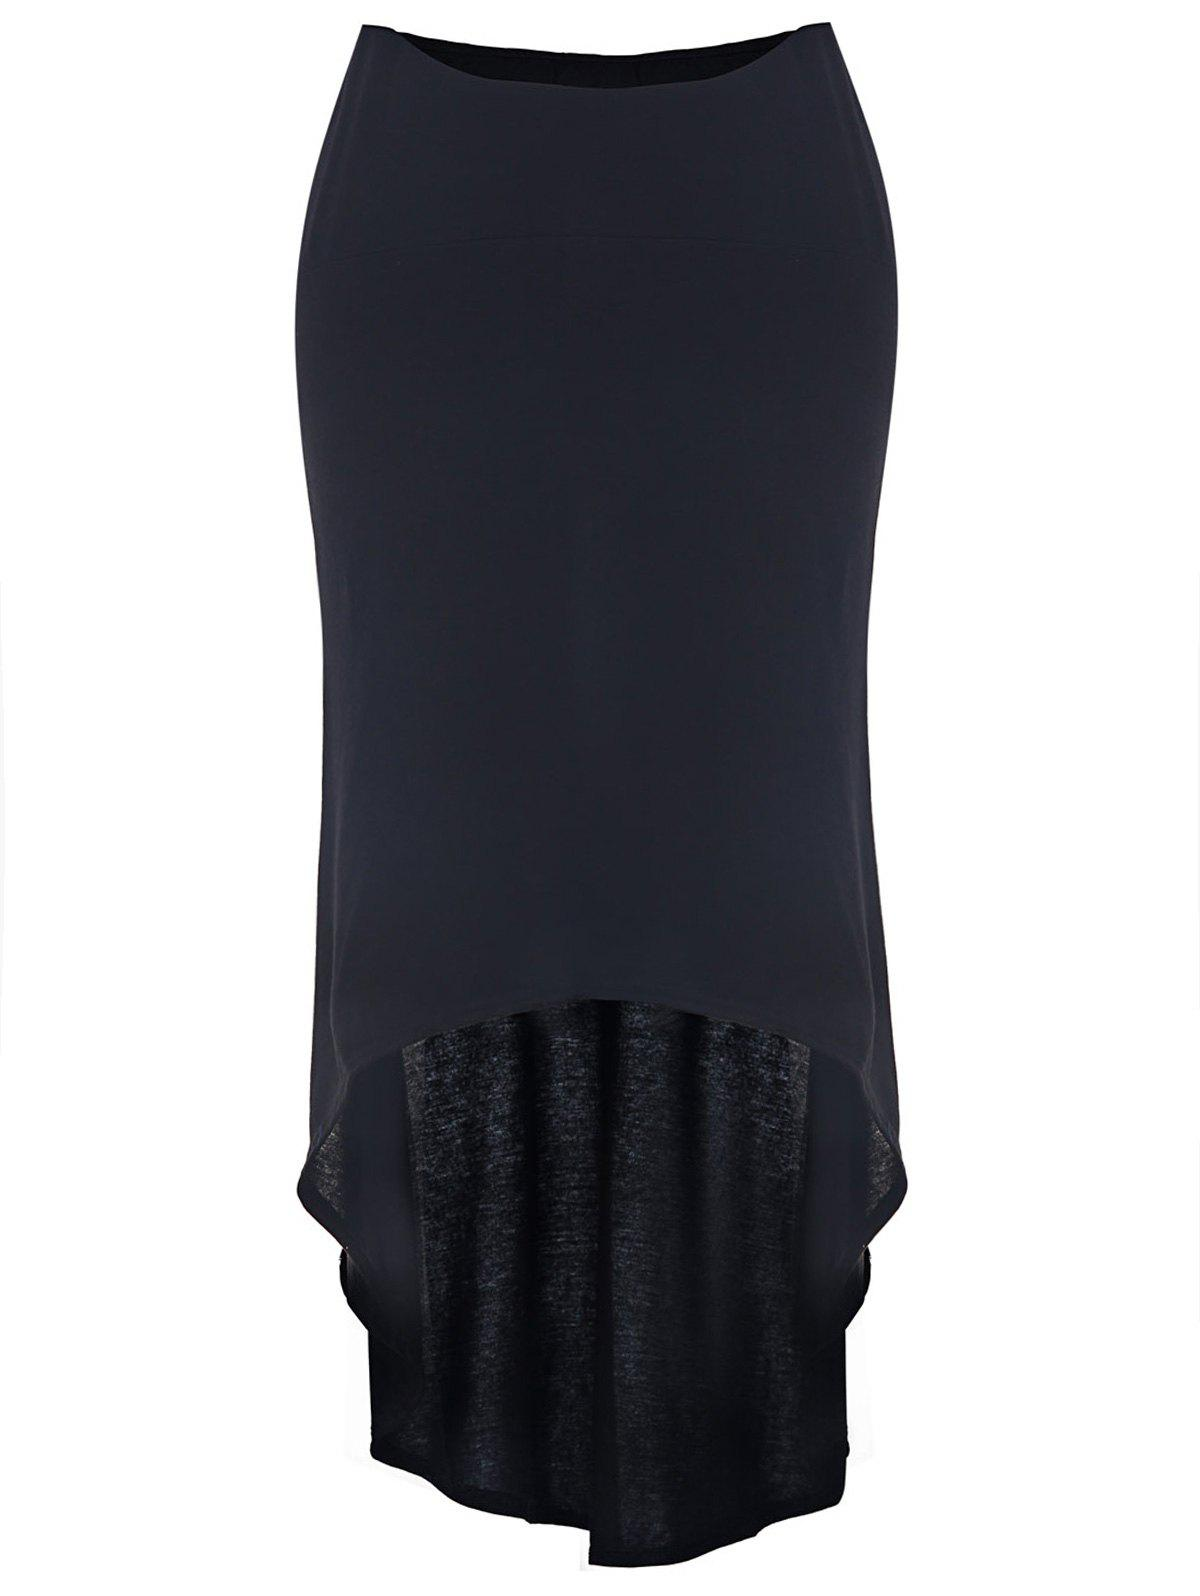 Charming Mid-Waisted Asymmetrical Solid Color Women's Skirt - BLACK L